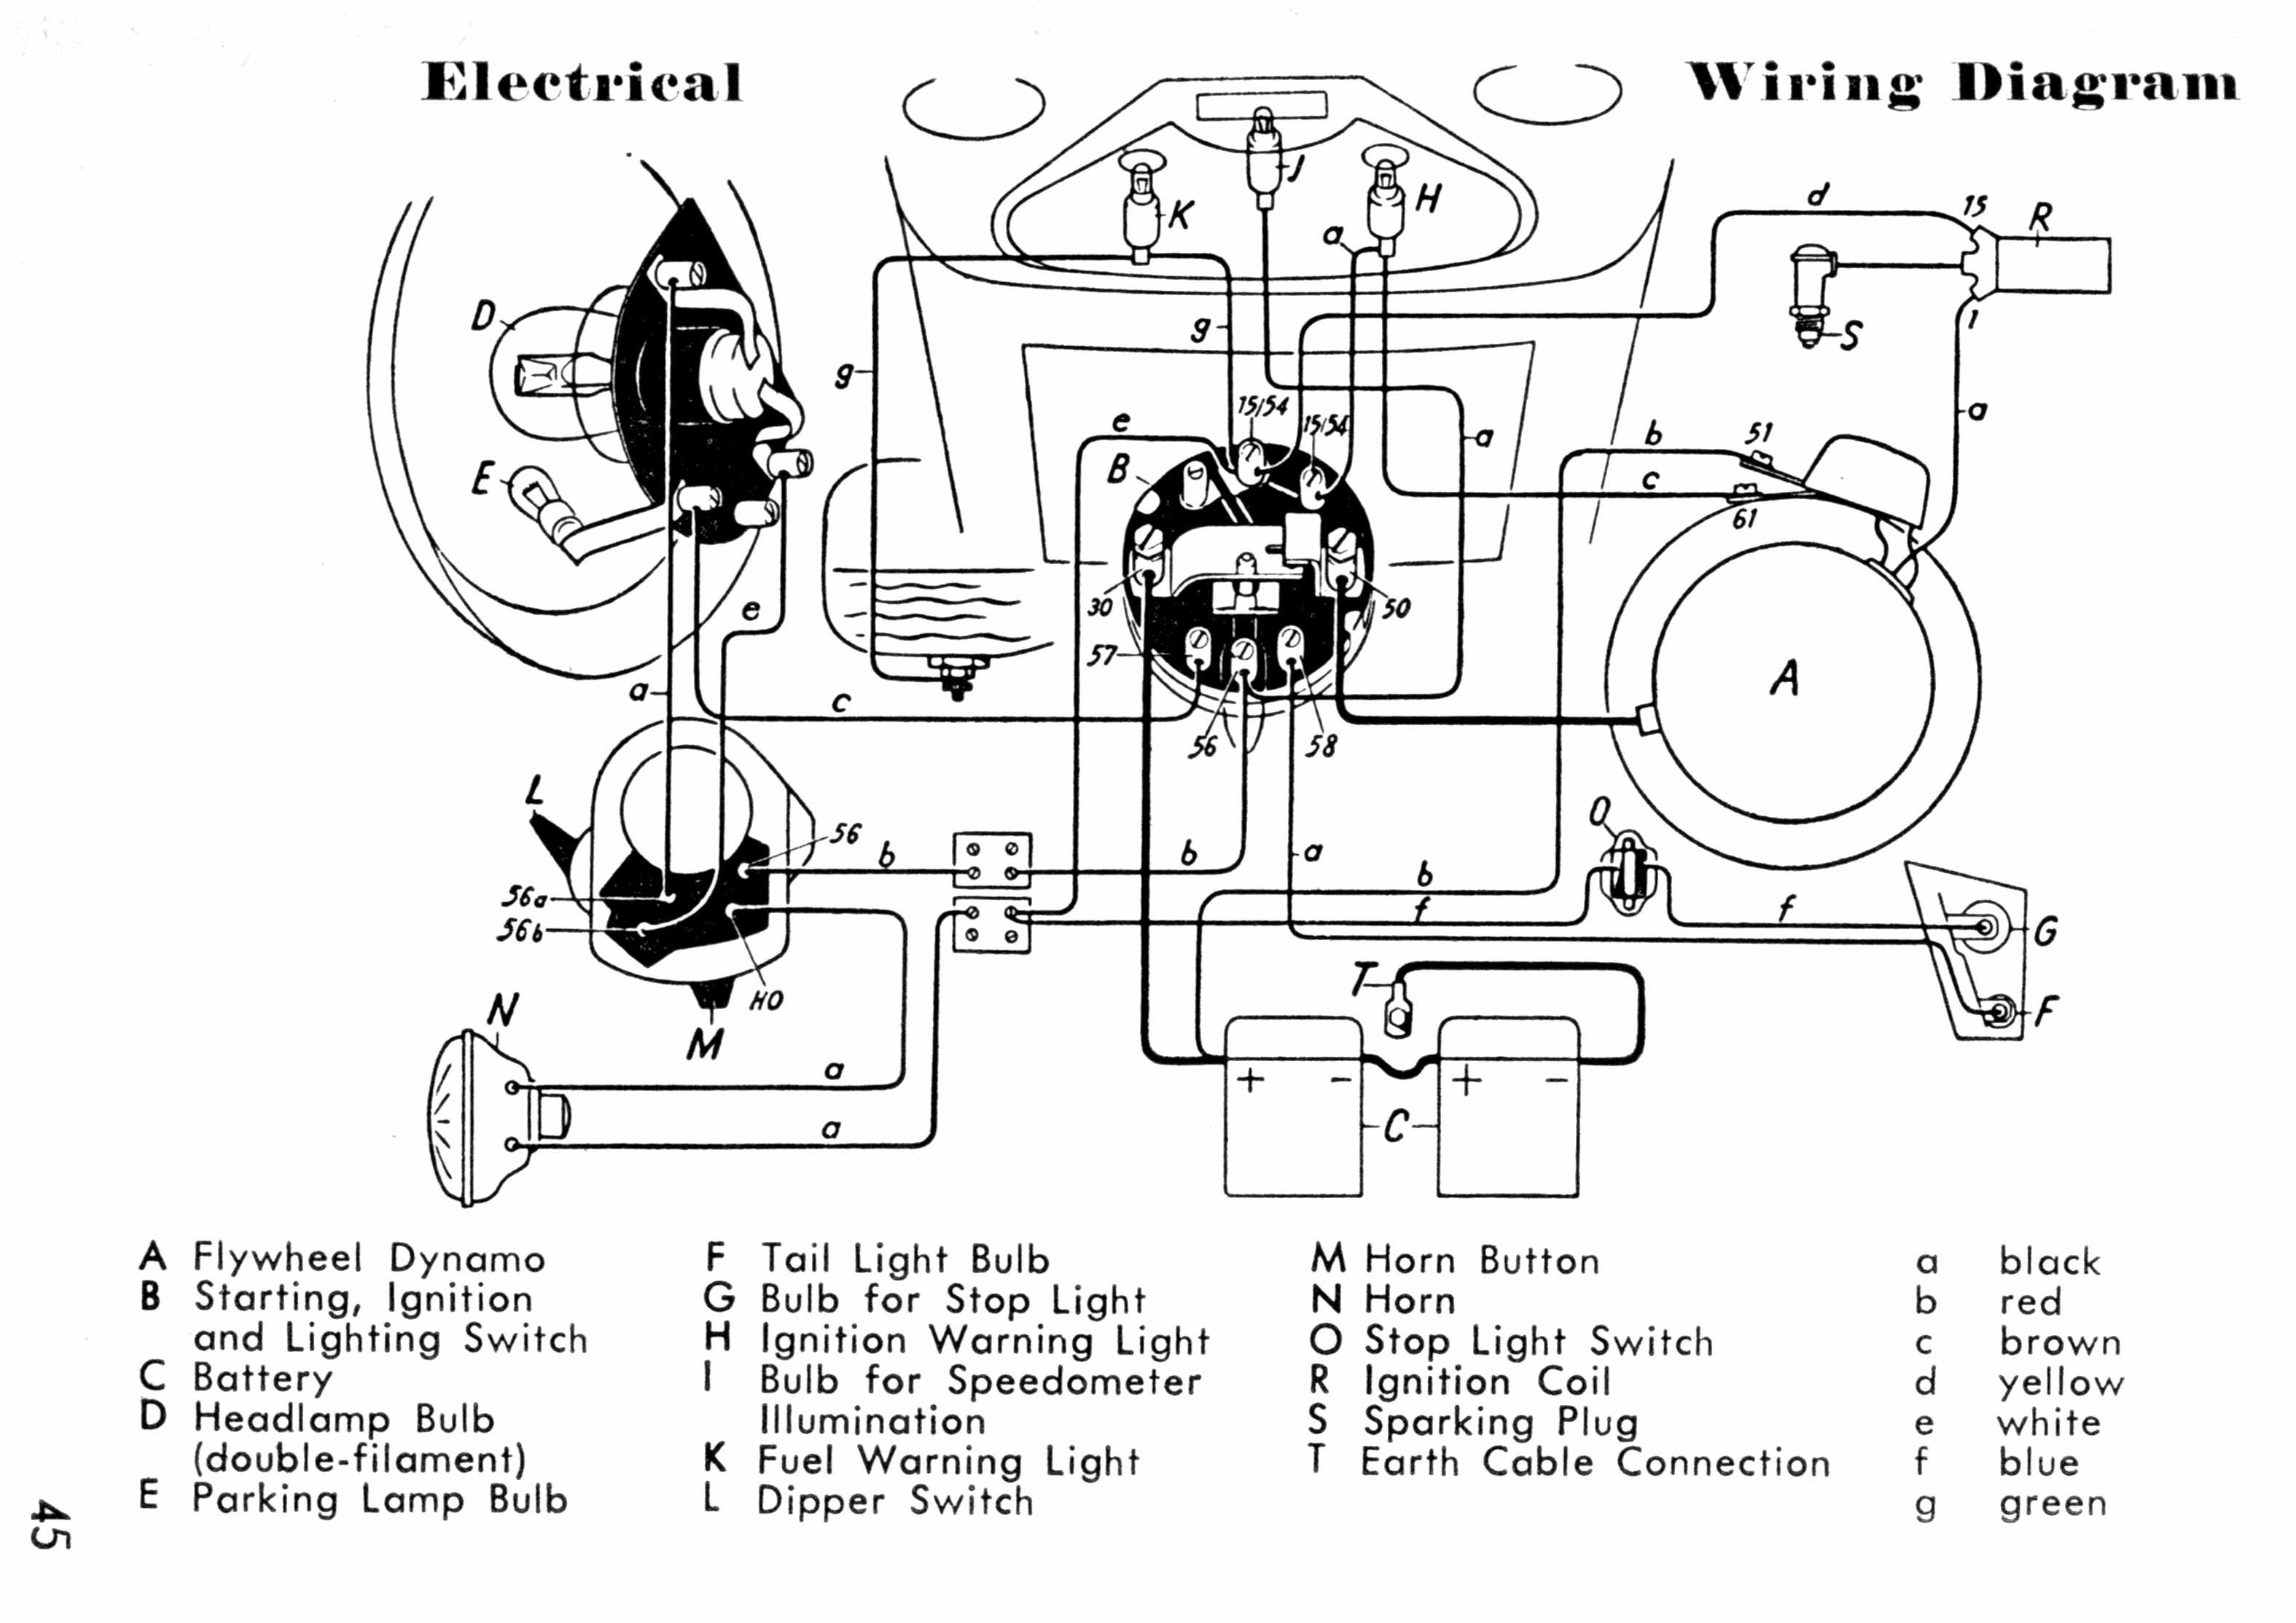 medium resolution of schematic electric scooter wiring diagram closet pinterest rh pinterest com chinese scooter ignition wiring diagram chinese scooter engine diagram